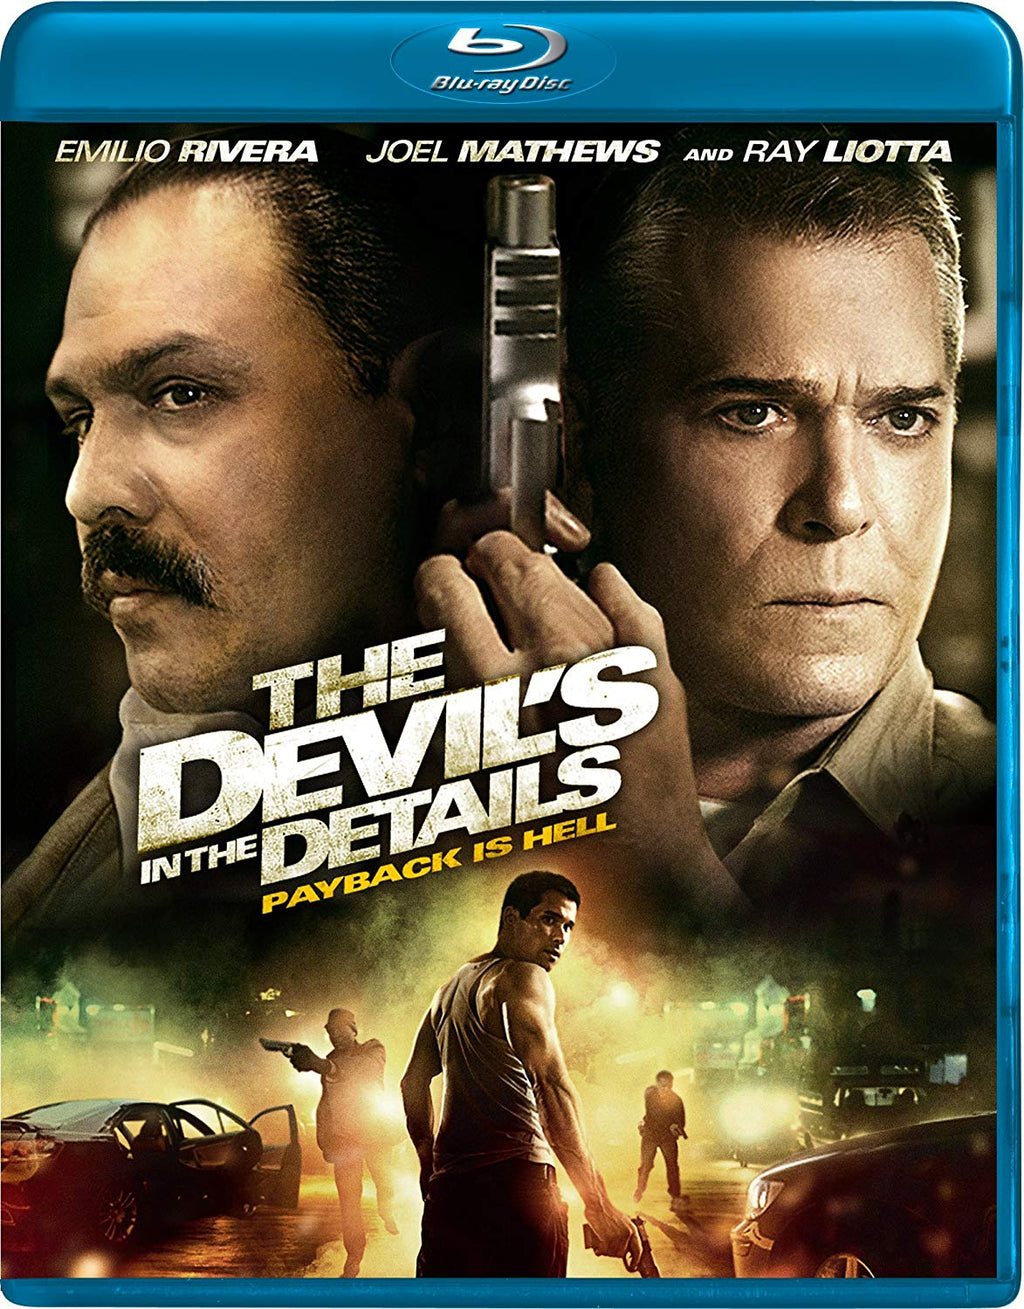 The Devil's in the Details Blu-ray